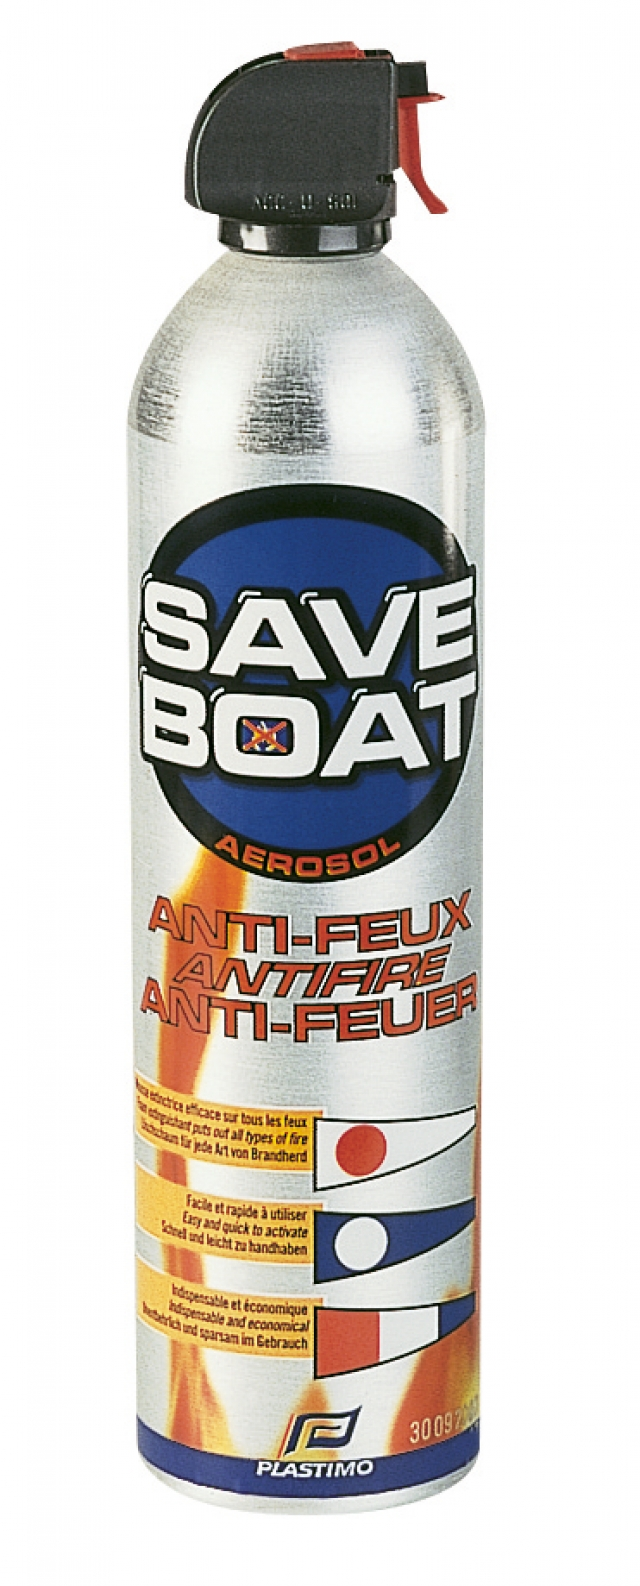 EXTINTOR SAVE BOAT